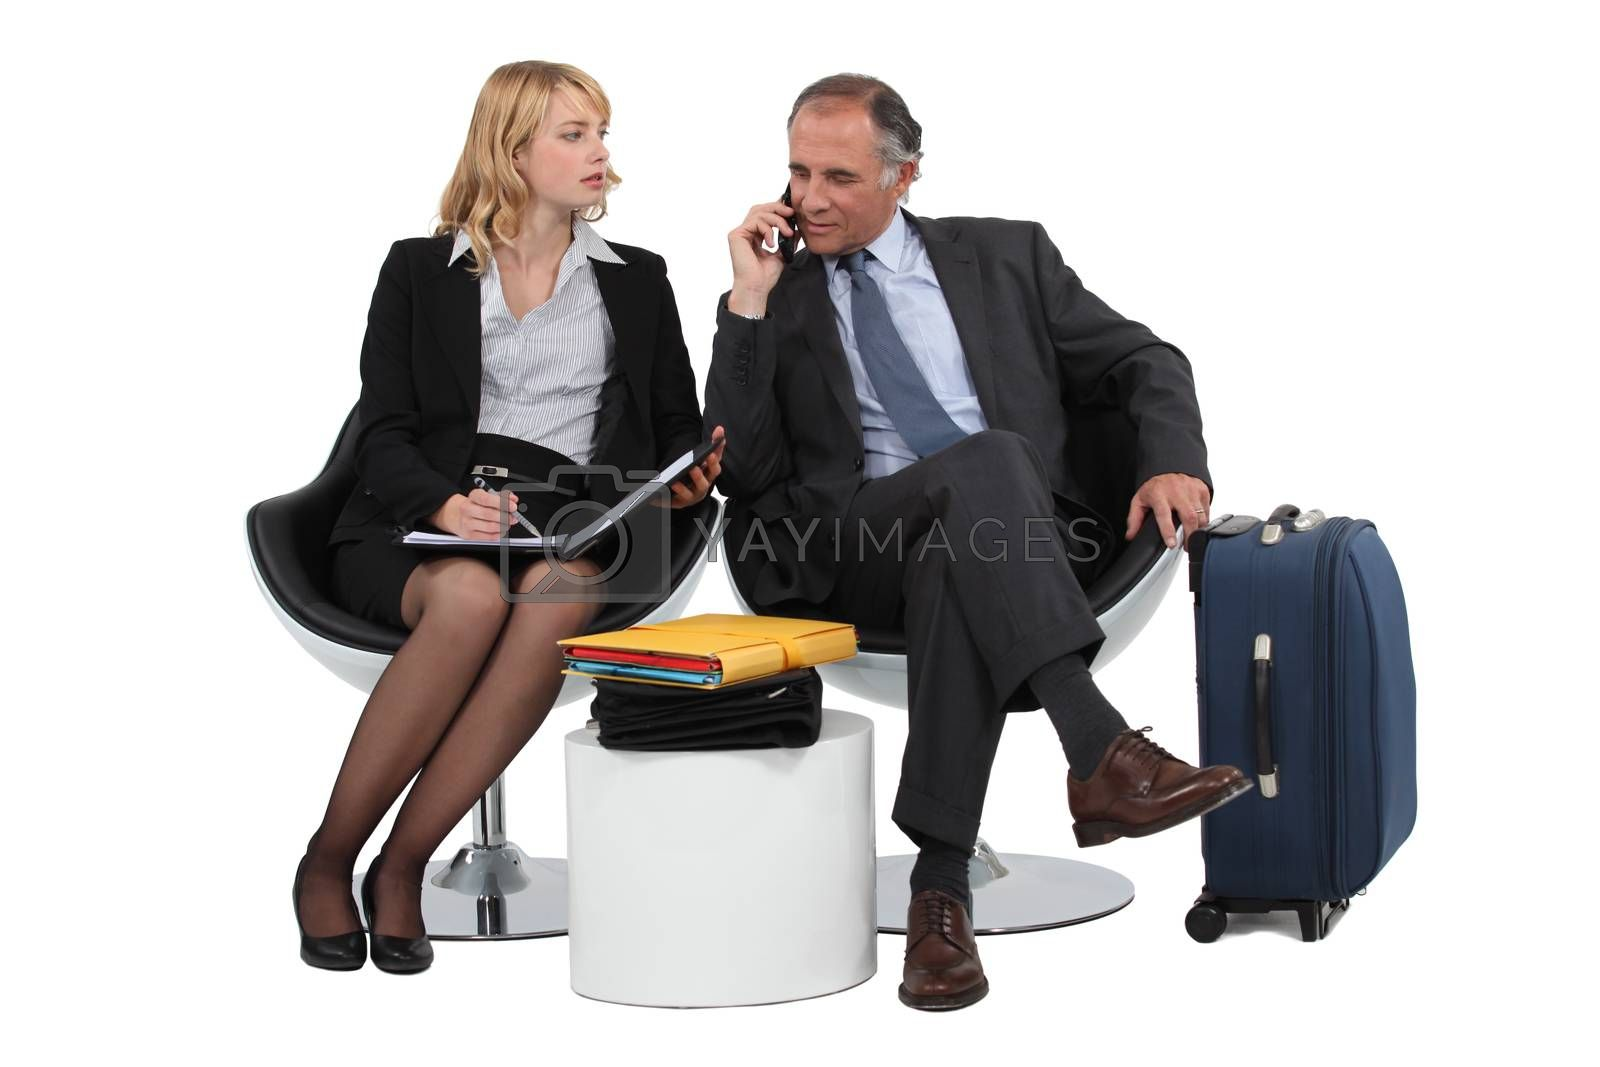 Two business people waiting